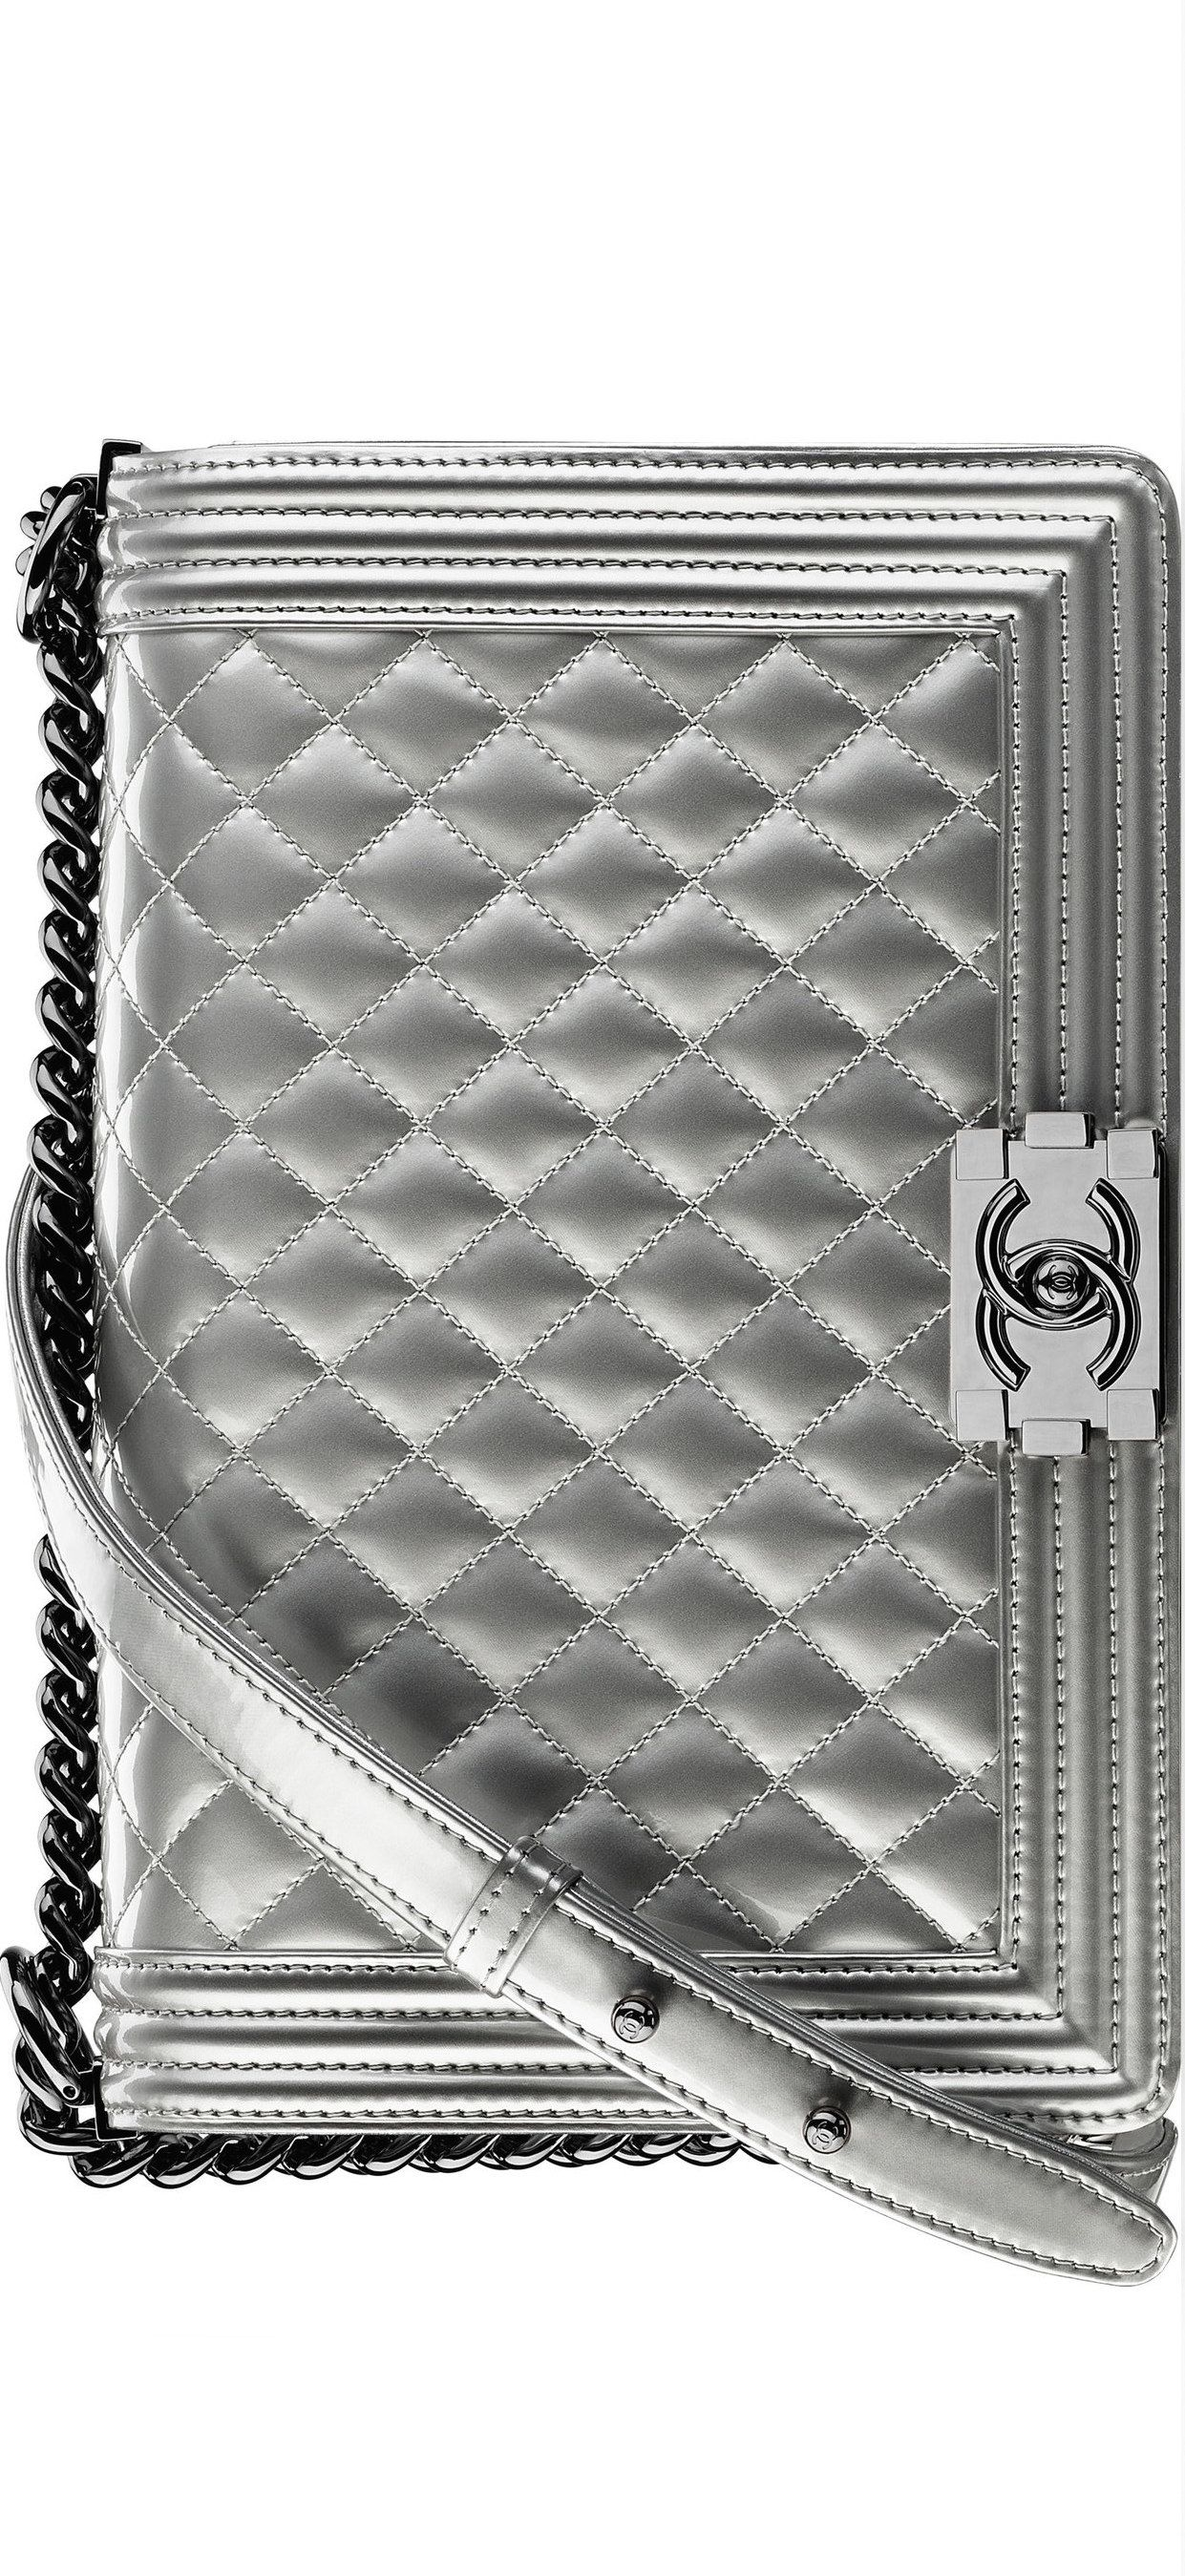 Boy Chanel Flap Bag  decff9e4e8